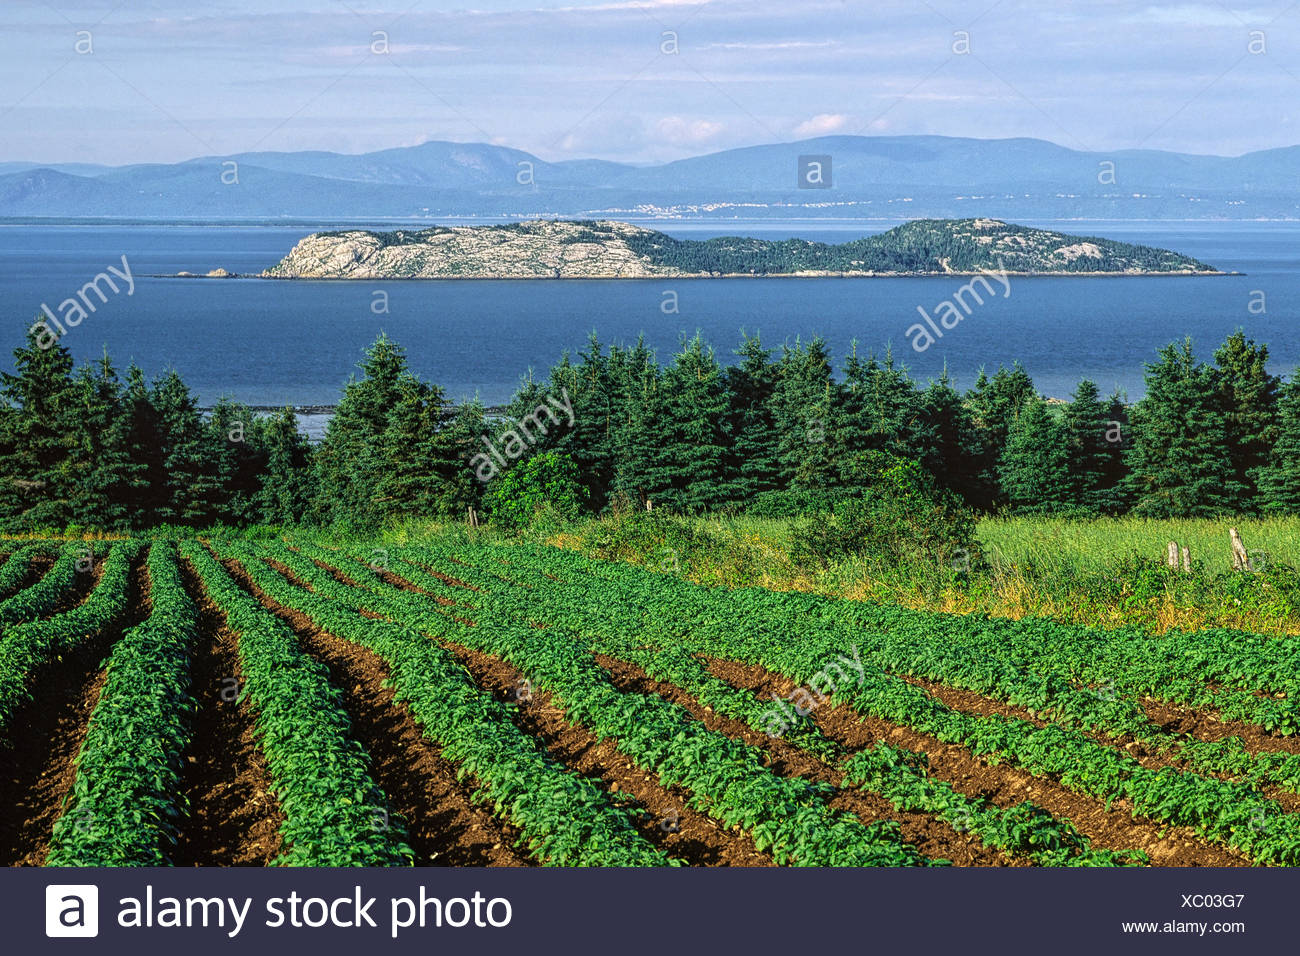 View from a potatoes field toward Pélerins Islands and the north shore of the Saint-Lawrence river, Cacouna, Lower Saint-Lawrence region, Québec, Canada - Stock Image